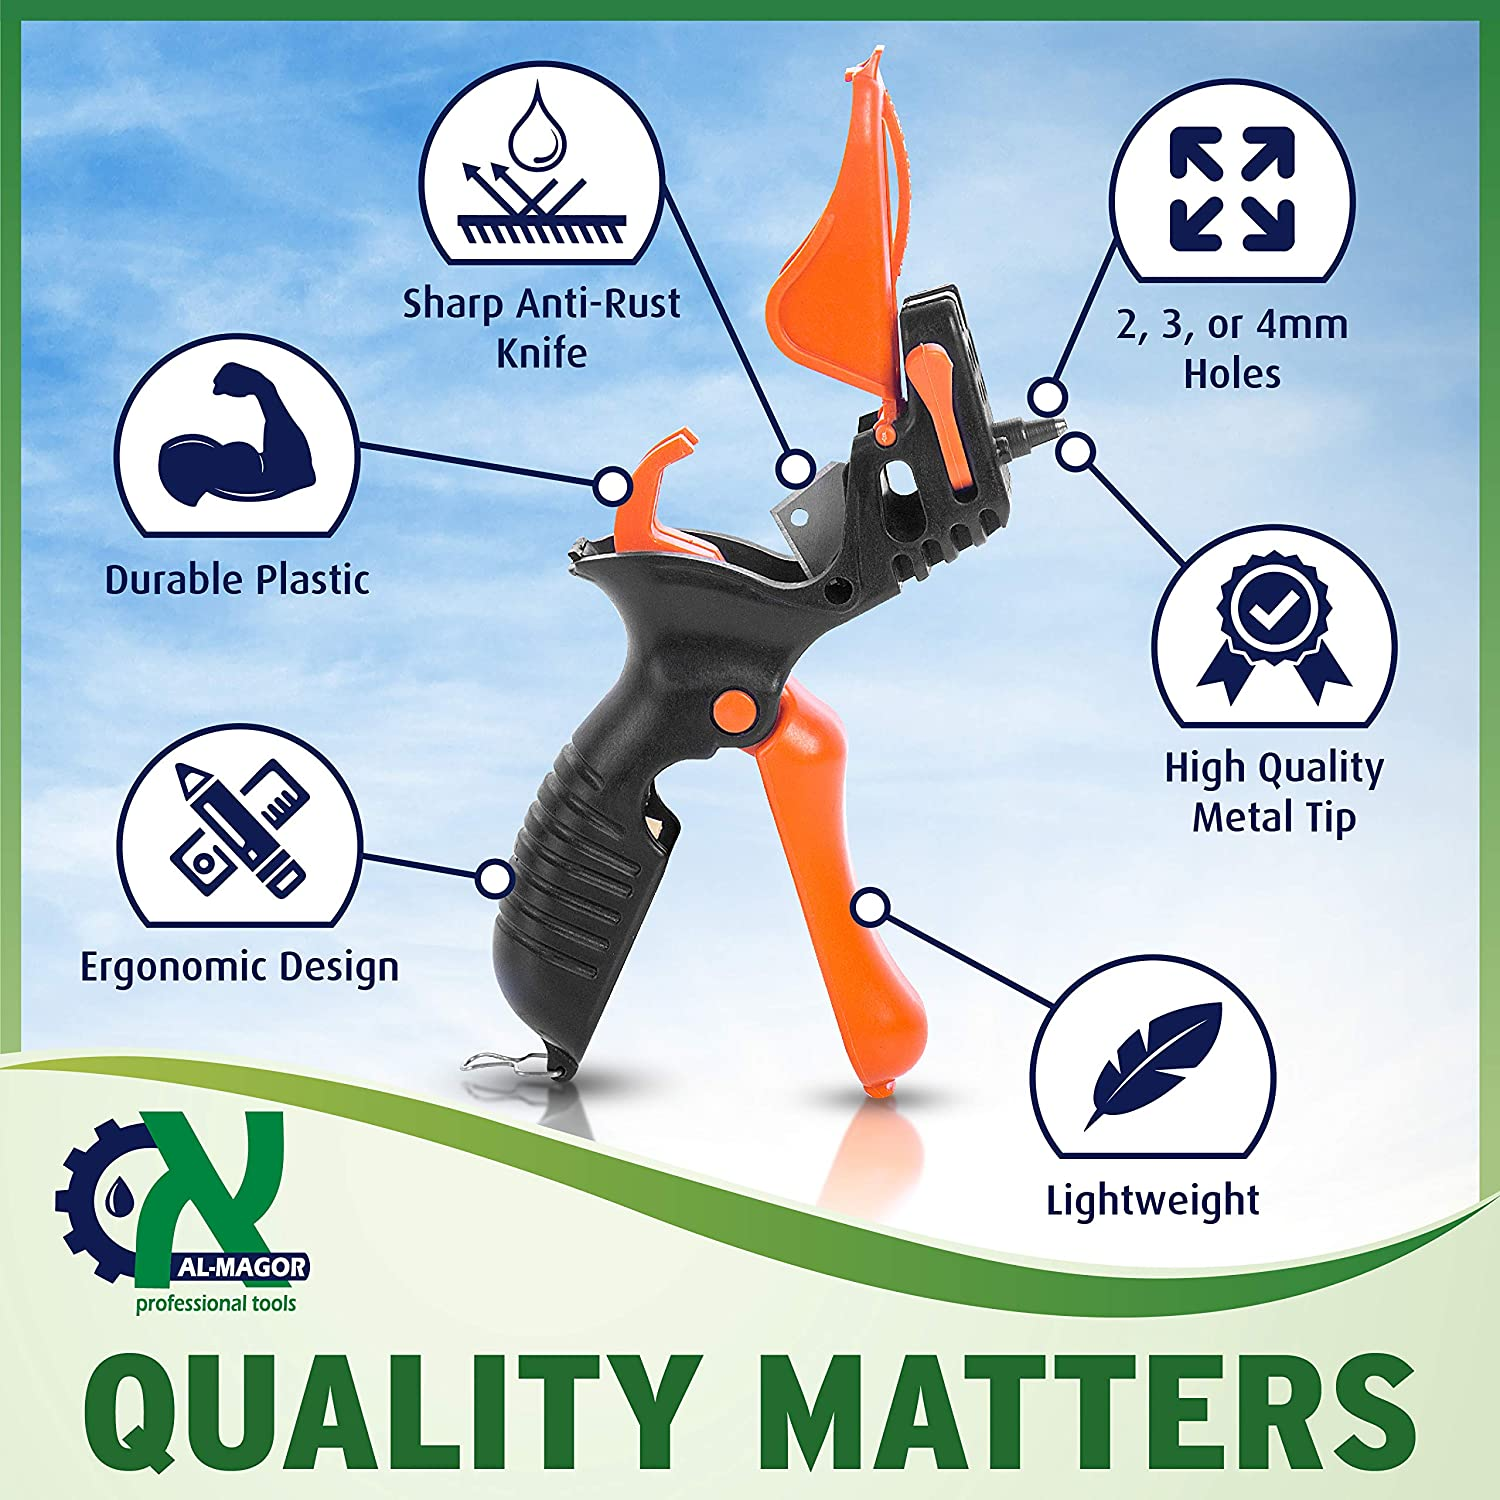 3 in 1 Multitask Punching Cutting Inserting Sprinklers /& Drippers in Irrigation Tube Pipes Model 350030-P 3mm Punch Tip /& Sharp Blade for Cutting AL-MAGOR Trigger TR-3 Garden Tool